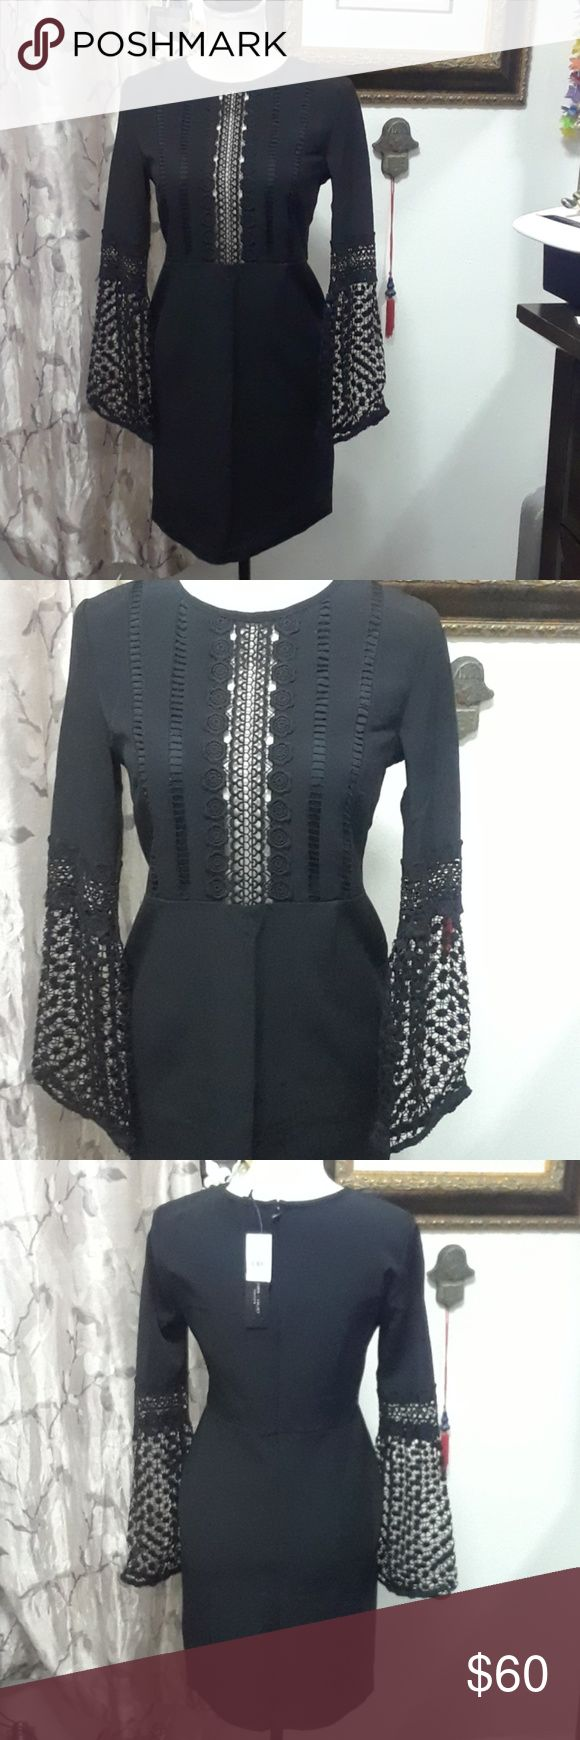 BRAND NEW ROMEO AND JULIET DRESS Beautiful dress black with lace good for any occasion. Romeo & Juliet Couture Dresses